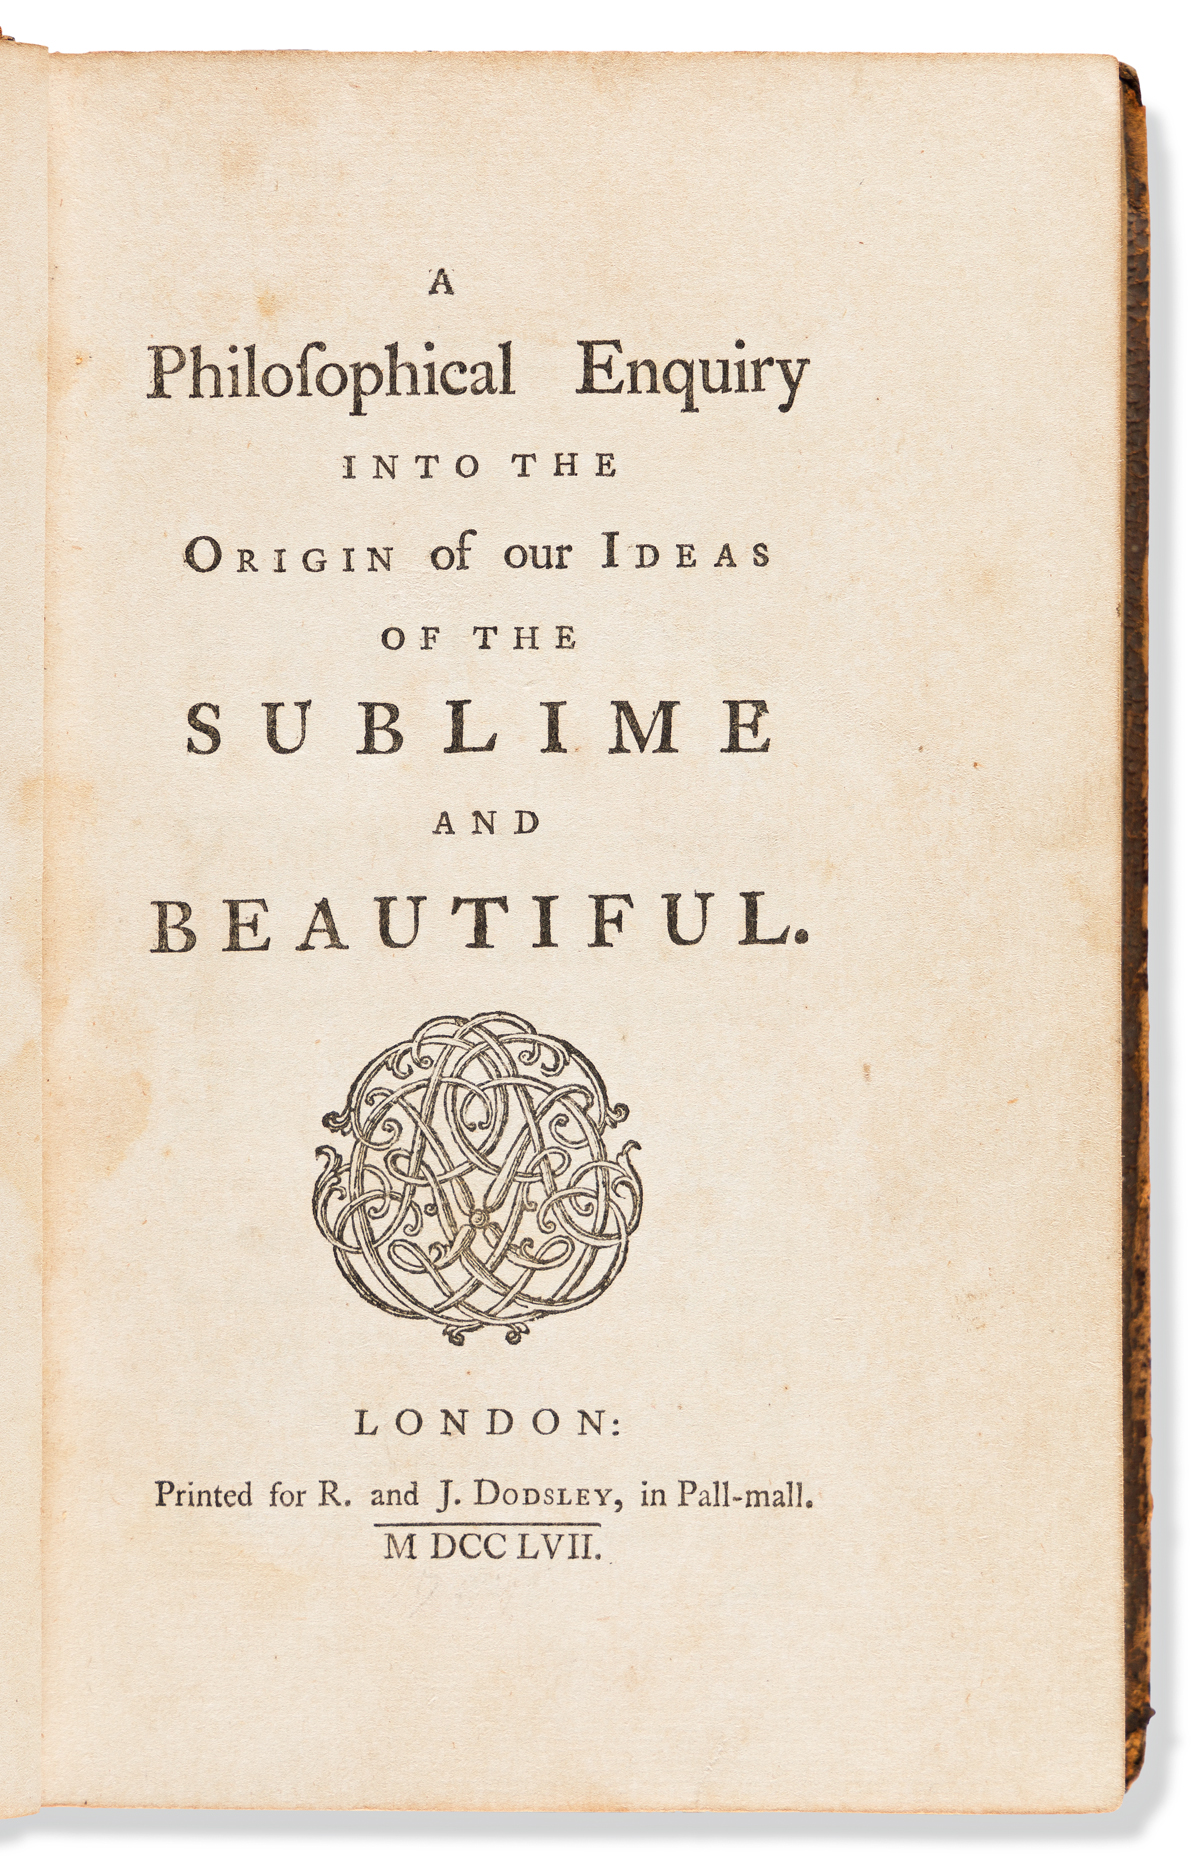 Burke, Edmund (1729-1797) A Philosophical Enquiry into the Origin of our Ideas of the Sublime & Beautiful.